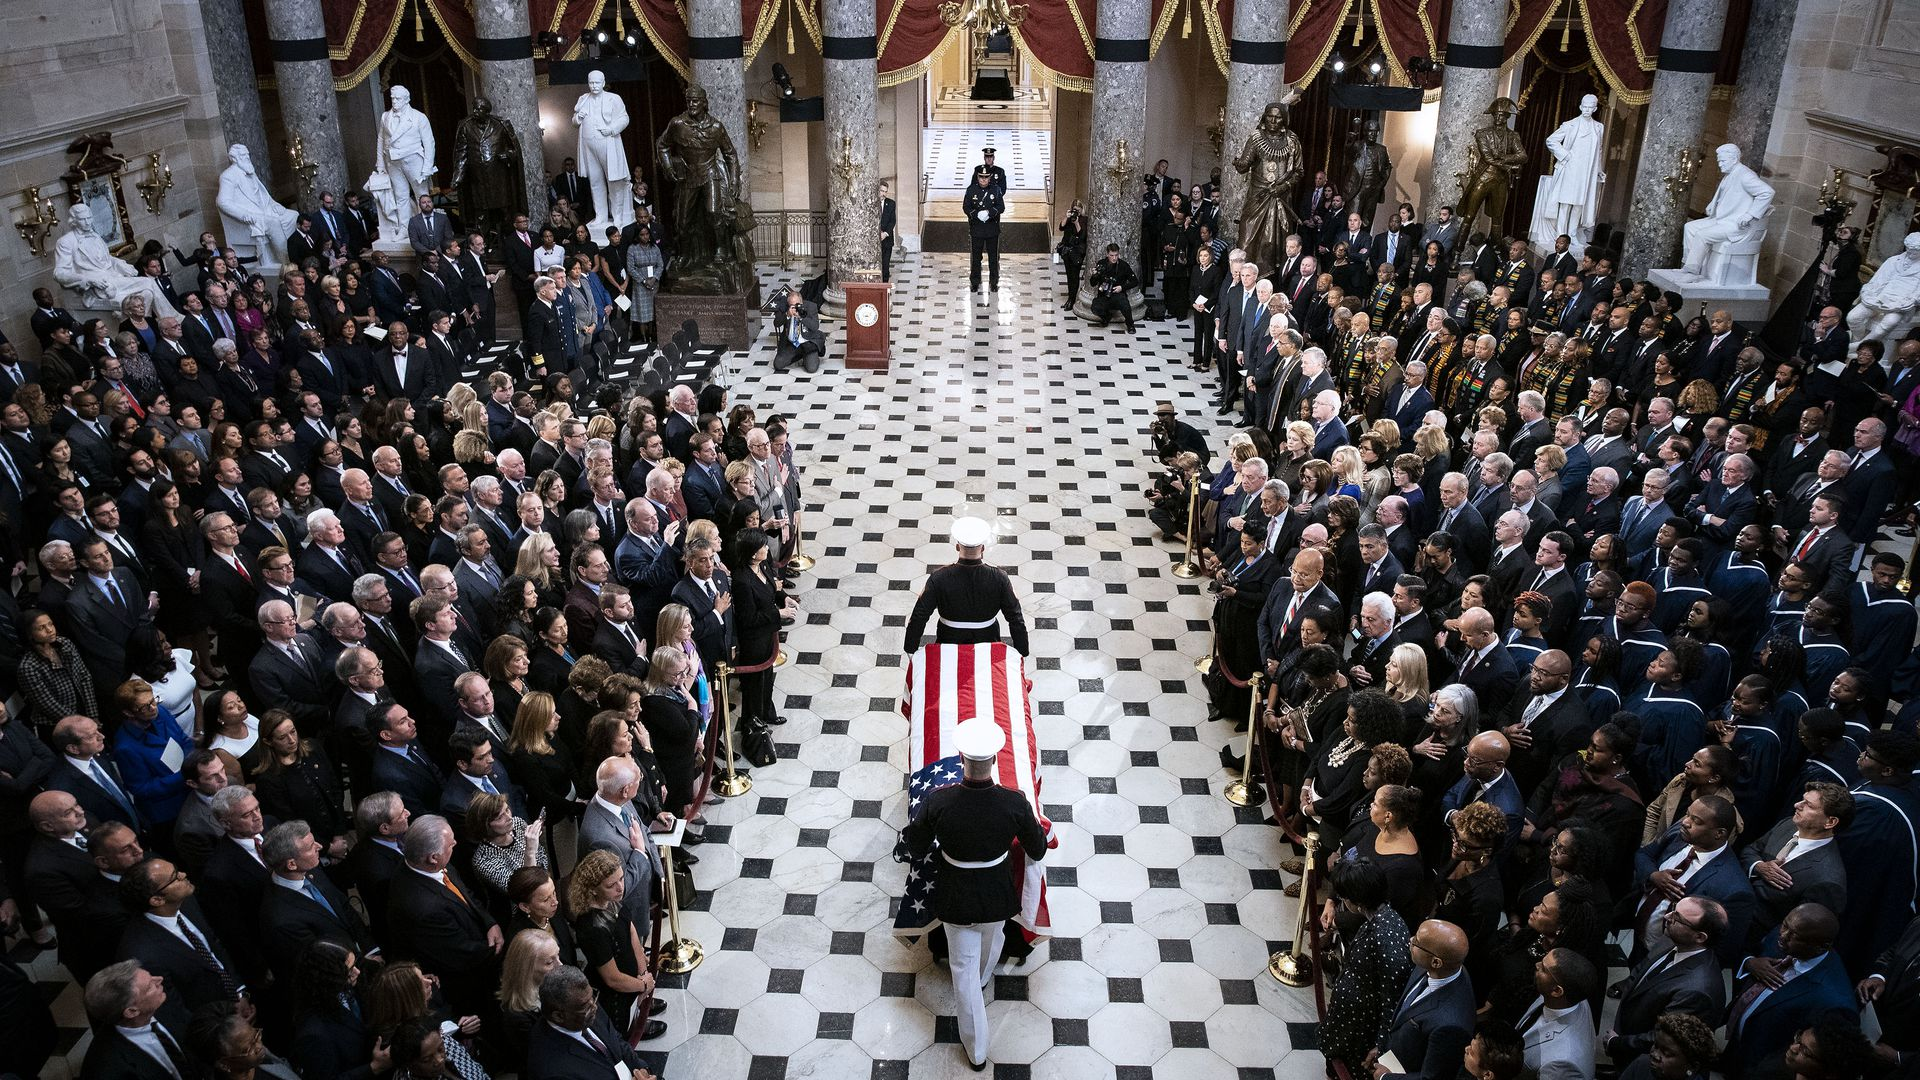 In this image, two soldiers carry a coffin draped with the American flag through a crowd in the Capitol. A path has been cleared for them.